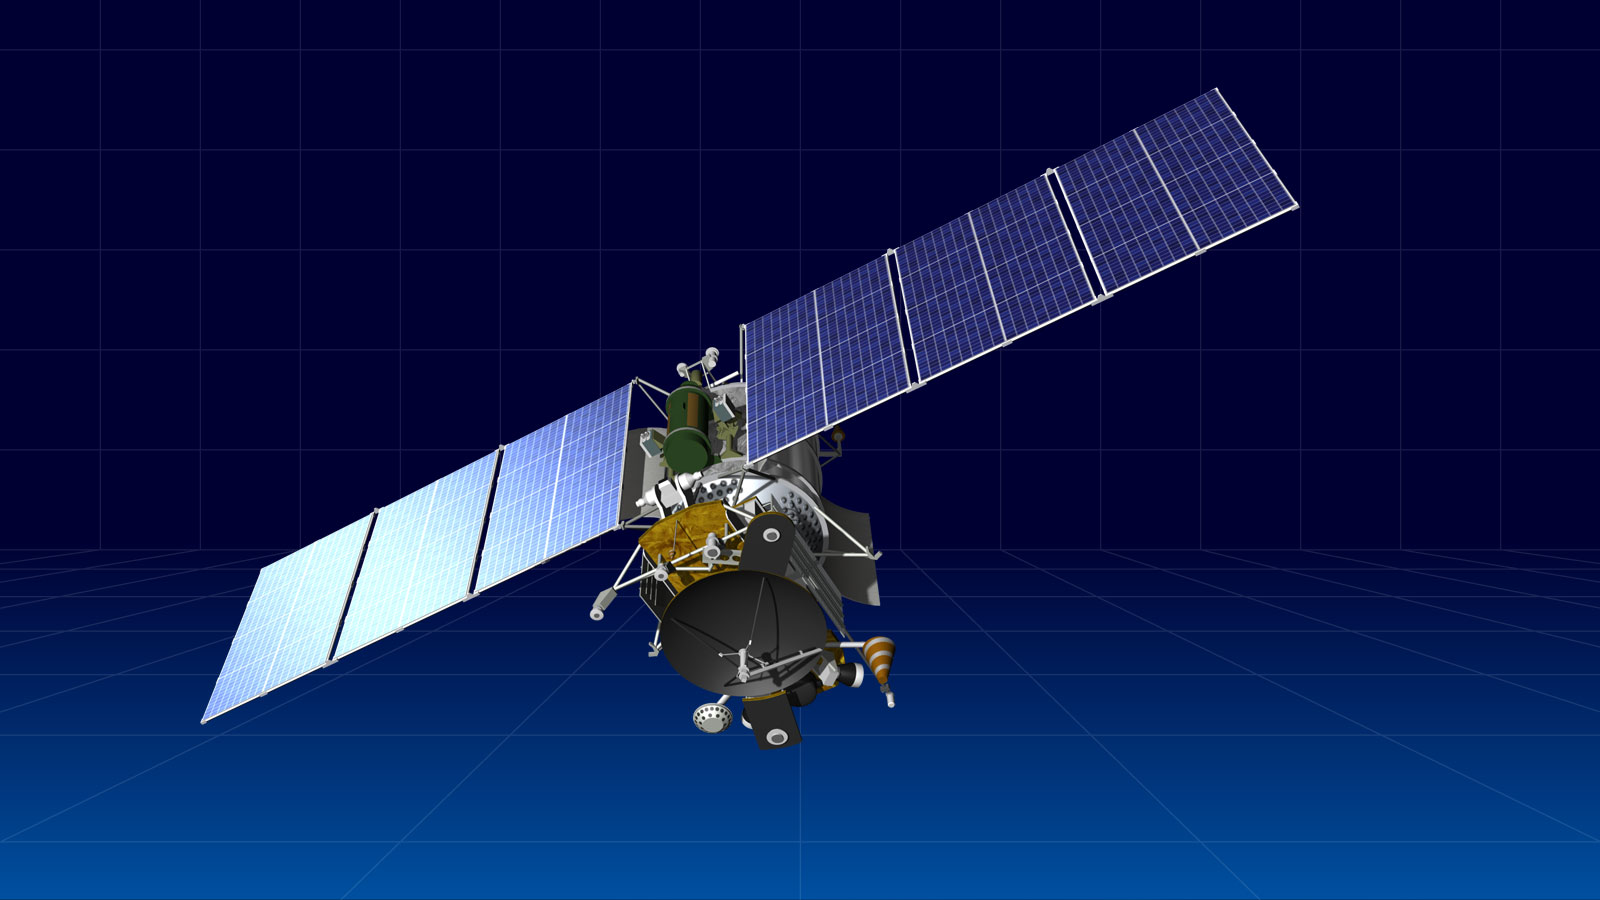 Artist's concept of a GEO-IK 2 satellite in orbit. Credit: ISS Reshetnev